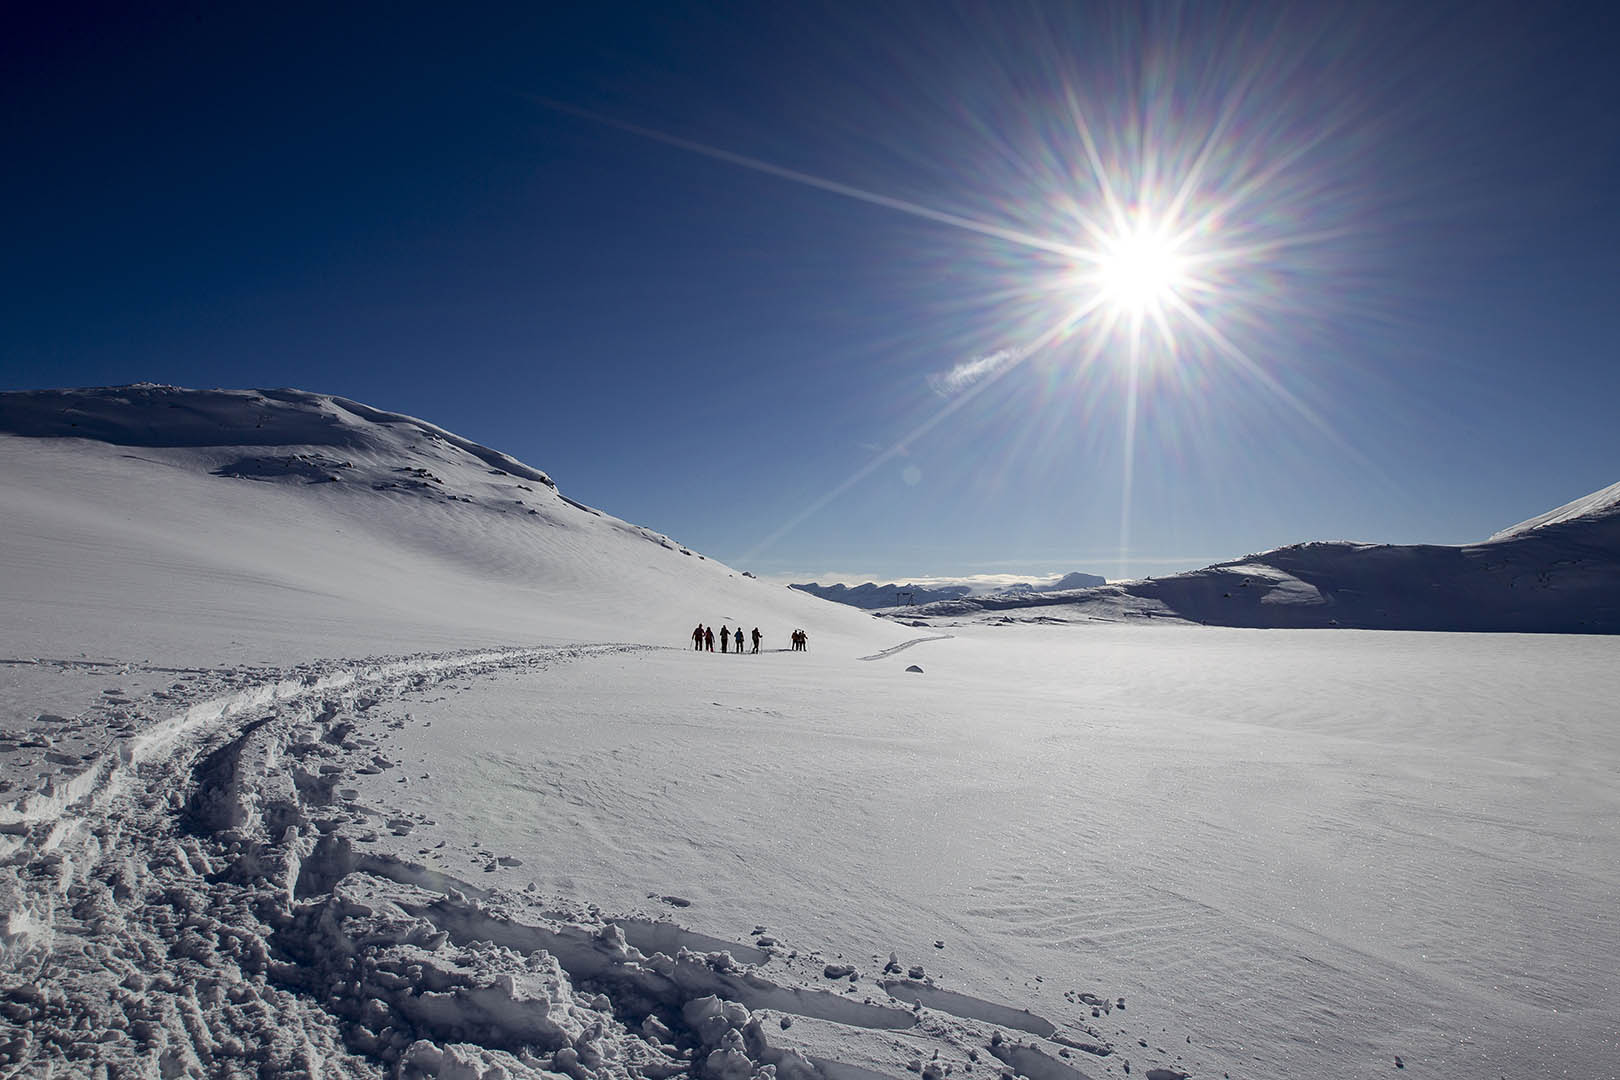 Alpepass: Explore the powder snow of the Sunnmøre and Nordfjord alps, Scan Magazine